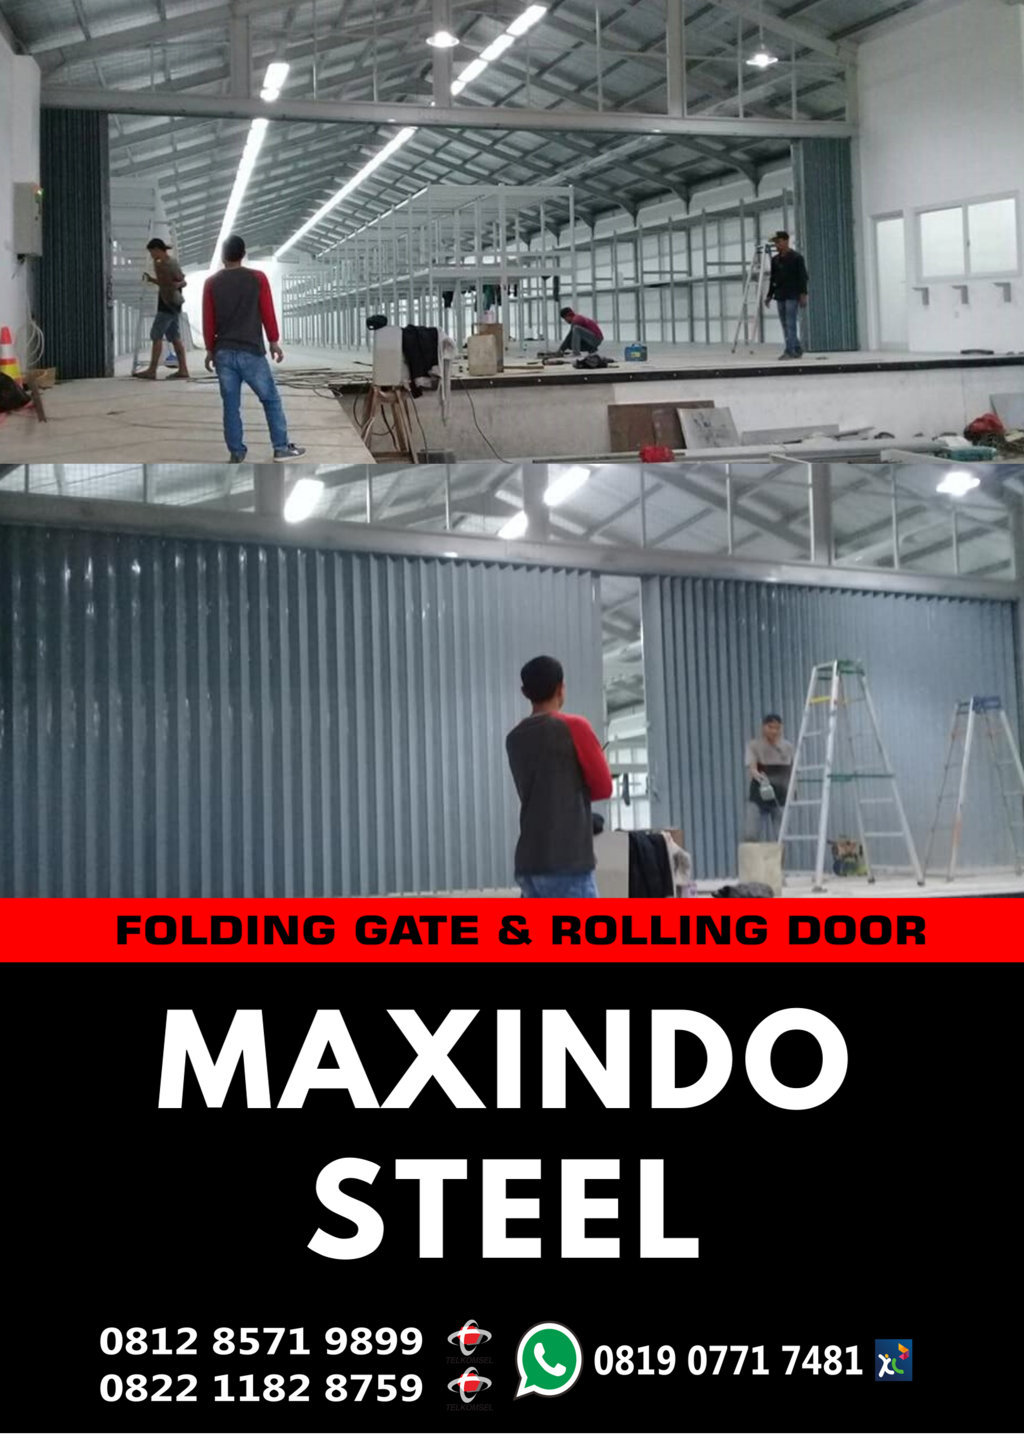 FOLDING-GATE-ROLLING-DOOR-Pontianak- Kalimantan- Barat